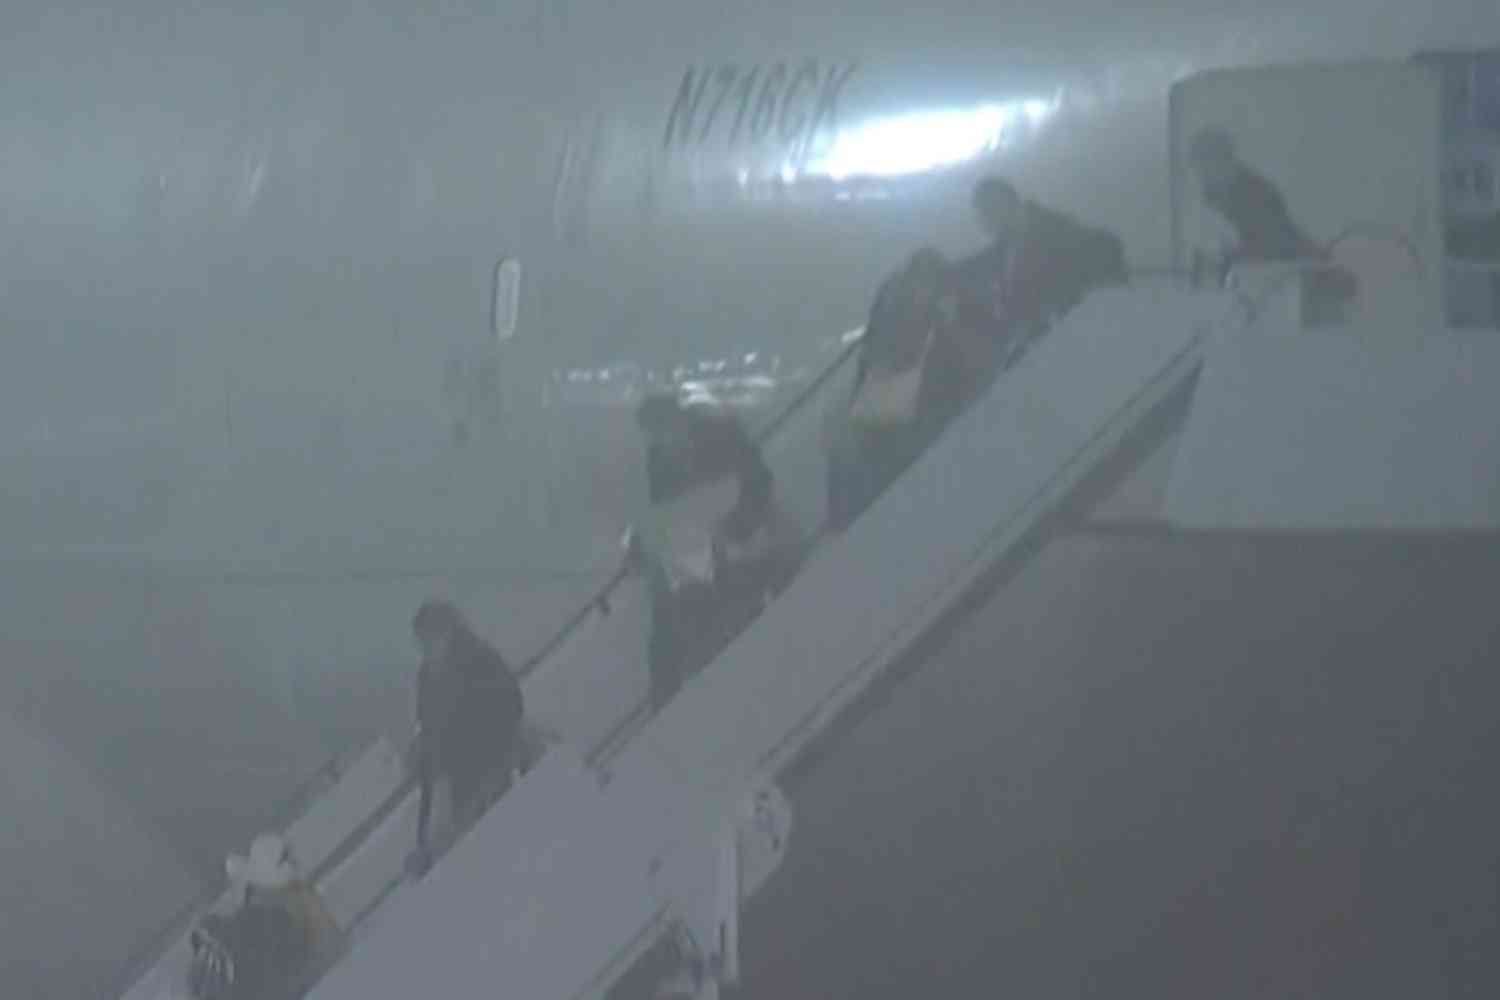 14 Americans test positive for coronavirus after evacuation from quarantined cruise ship